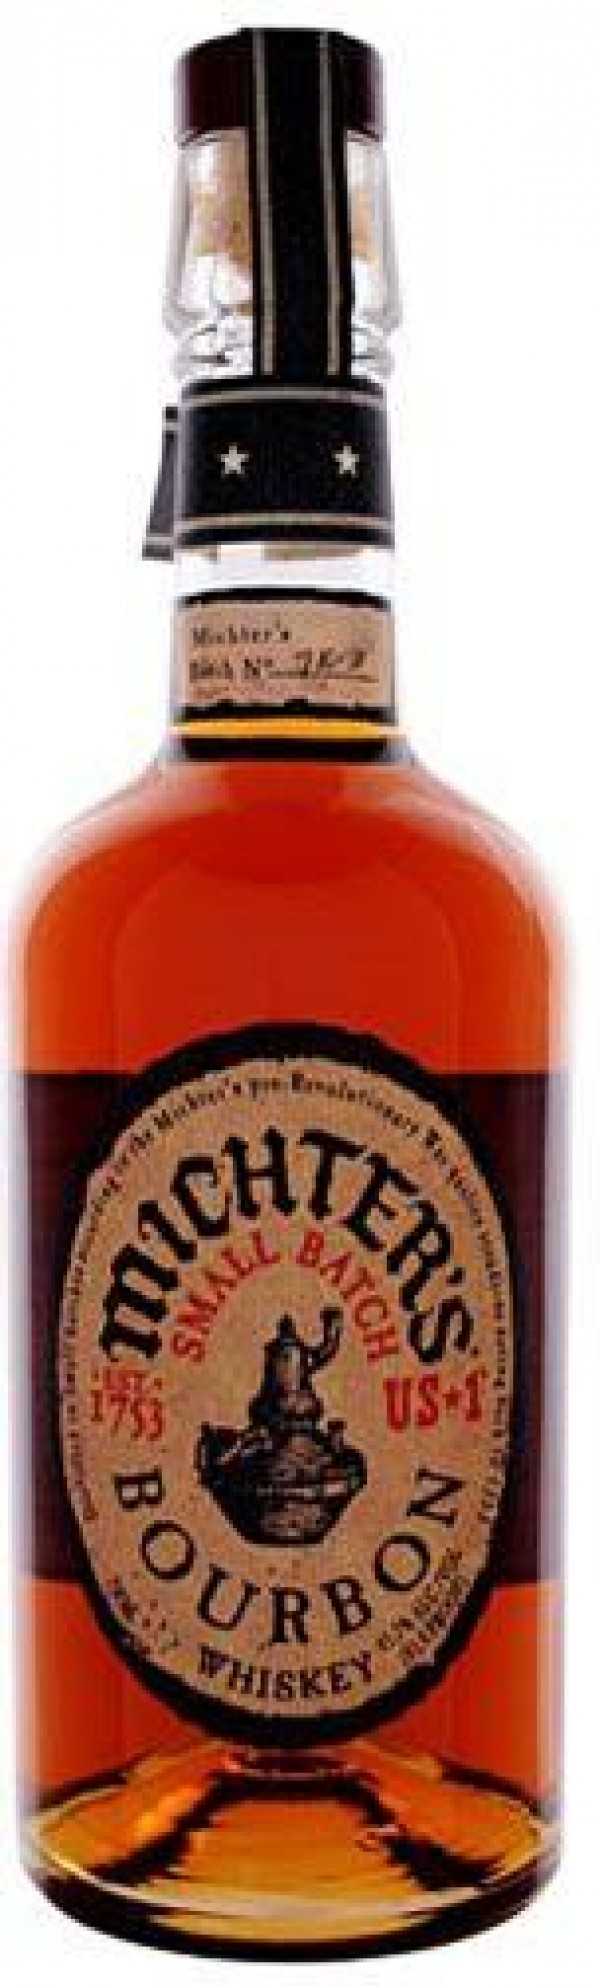 Michter's Bourbon Whiskey Small Batch US*1